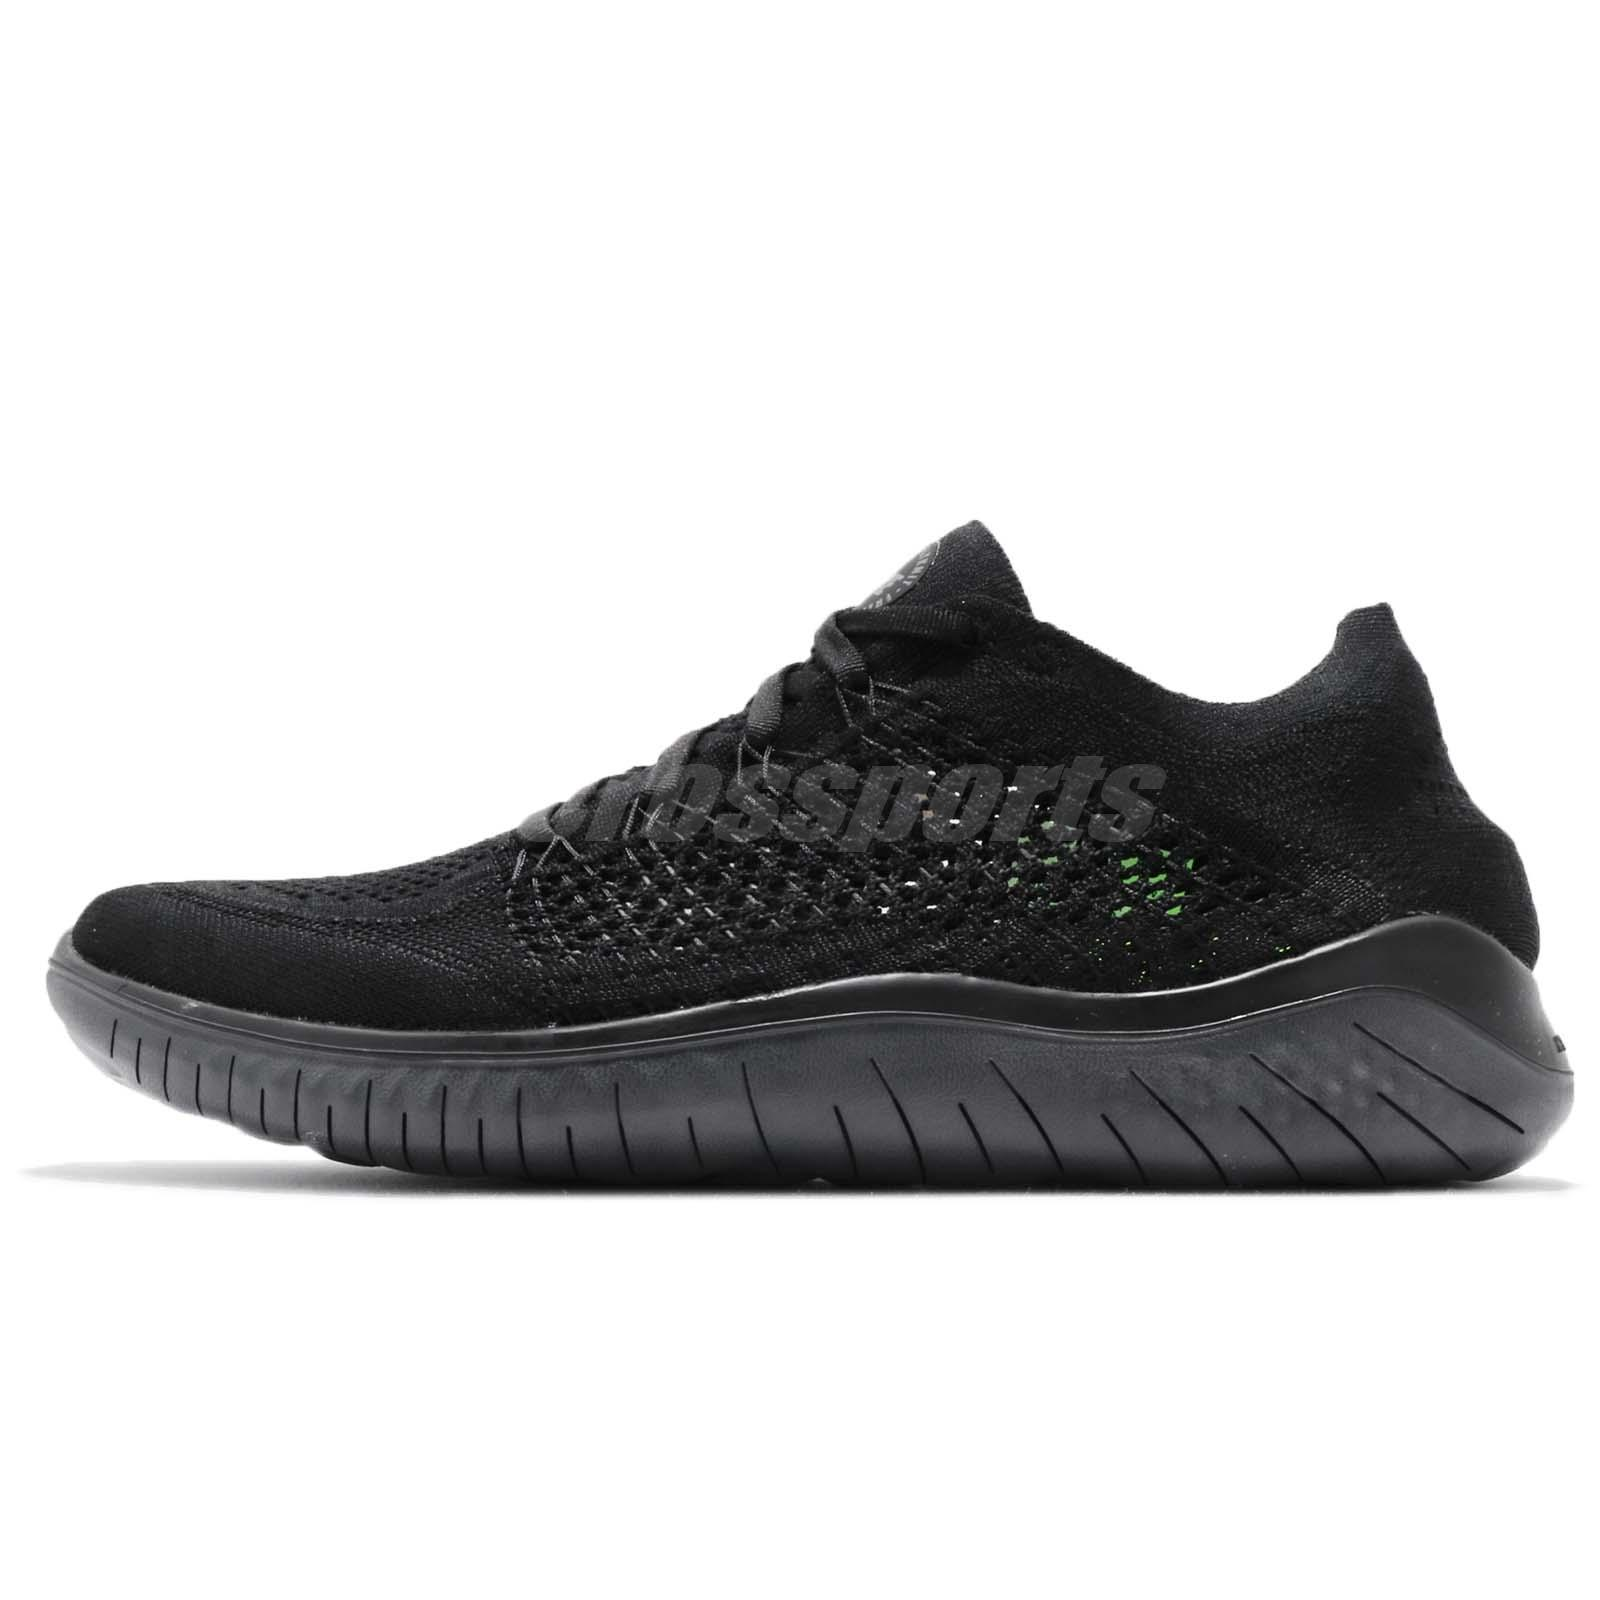 e8f5e0c2344 Nike Free RN Flyknit 2018 Run Black Anthracite Men Running Shoes 942838-002